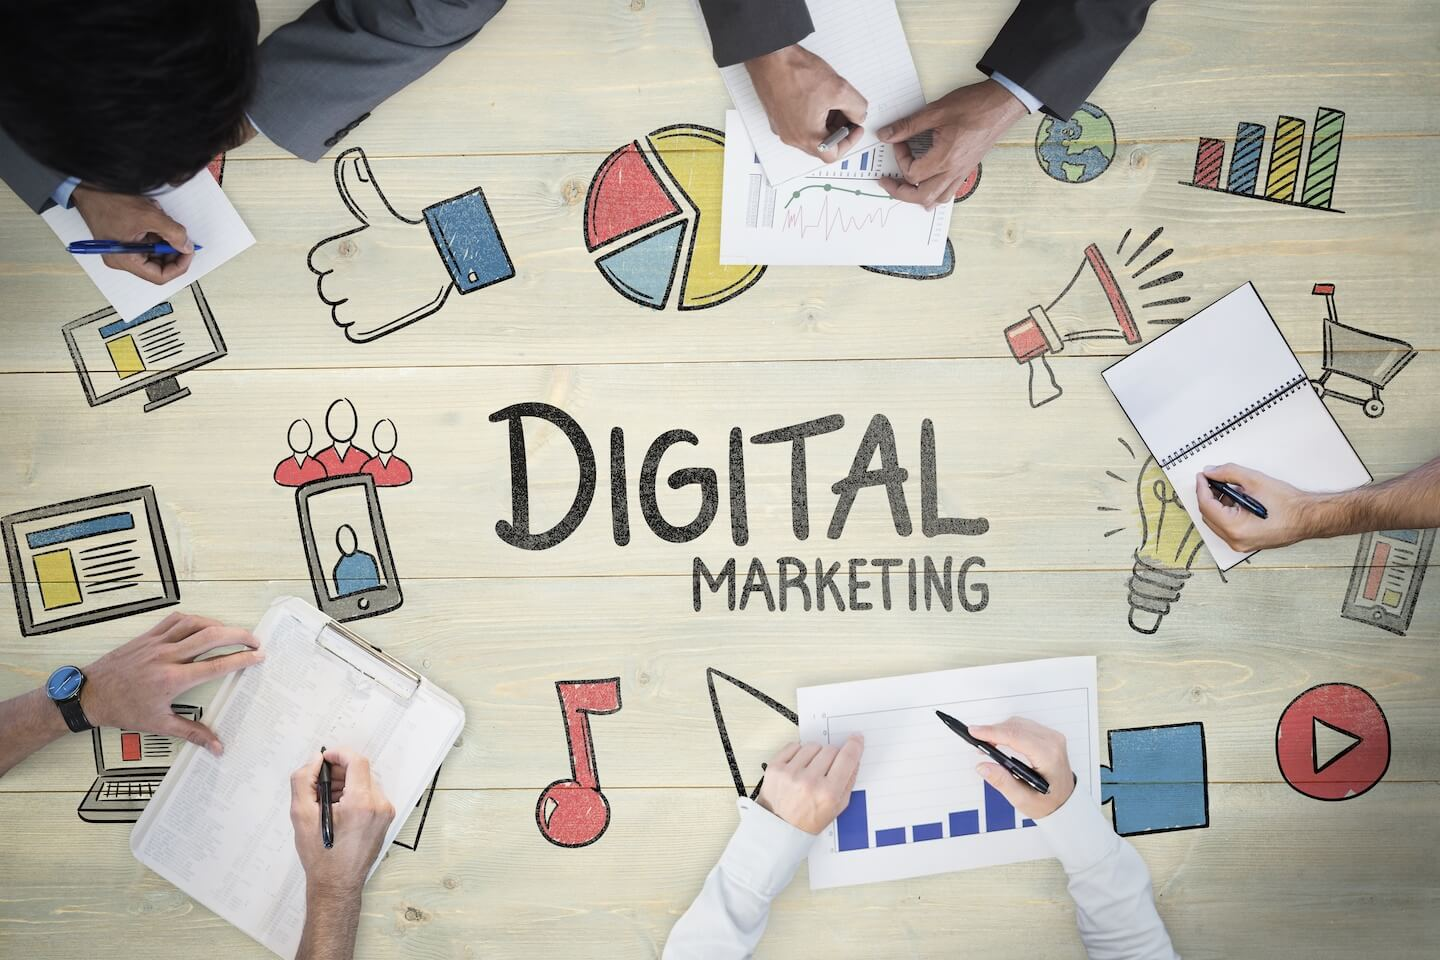 Digital-Marketing-DigitalhIpster-inc